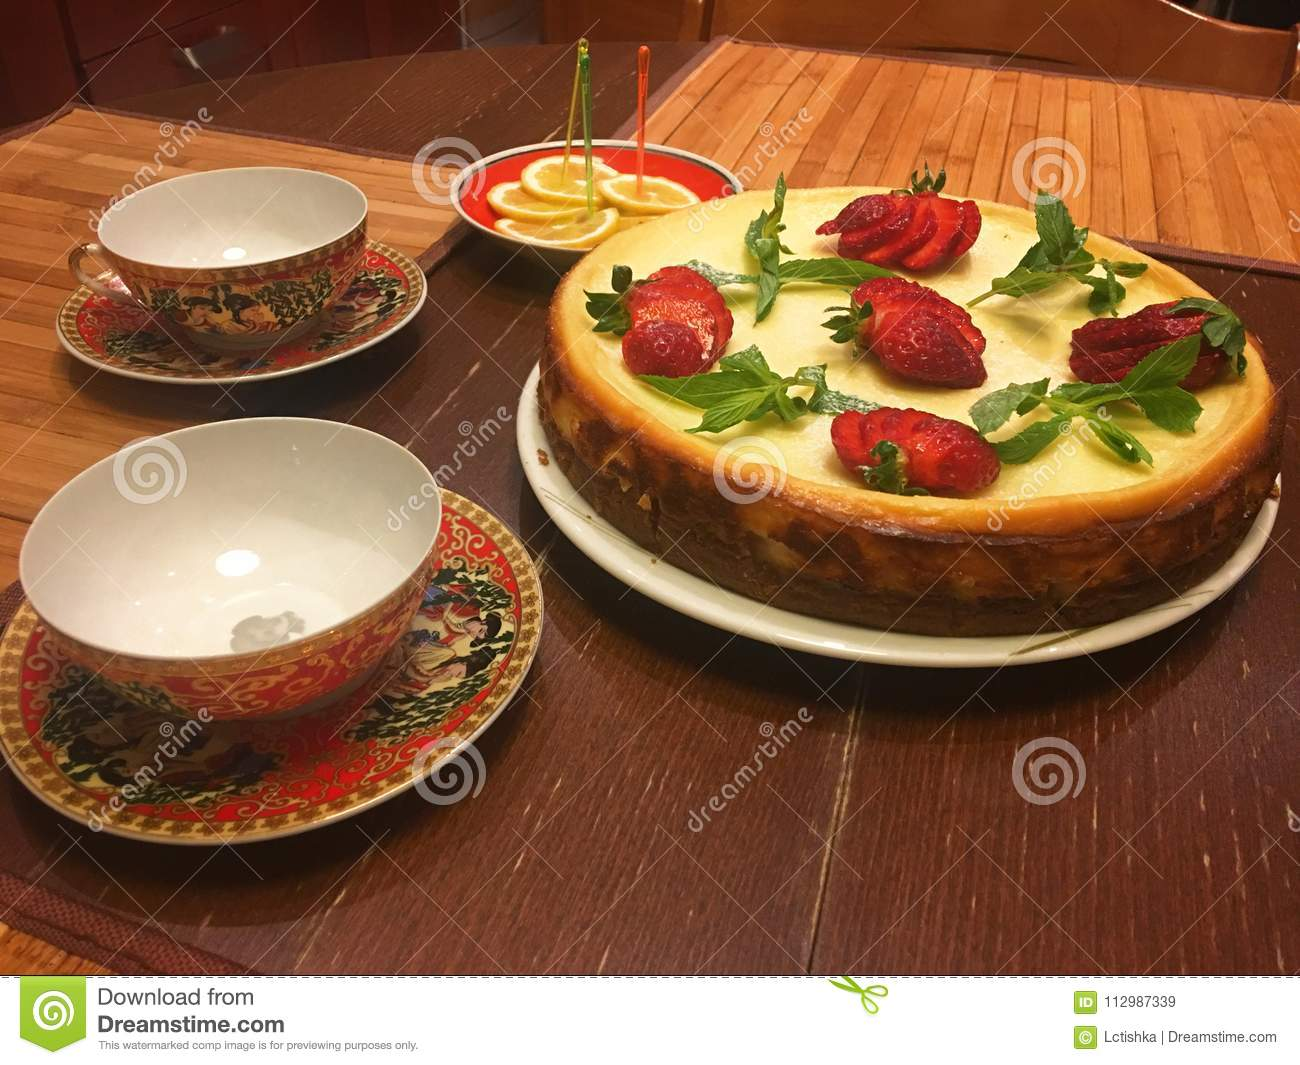 Cheesecake cake decorated with mint leaves and strawberries